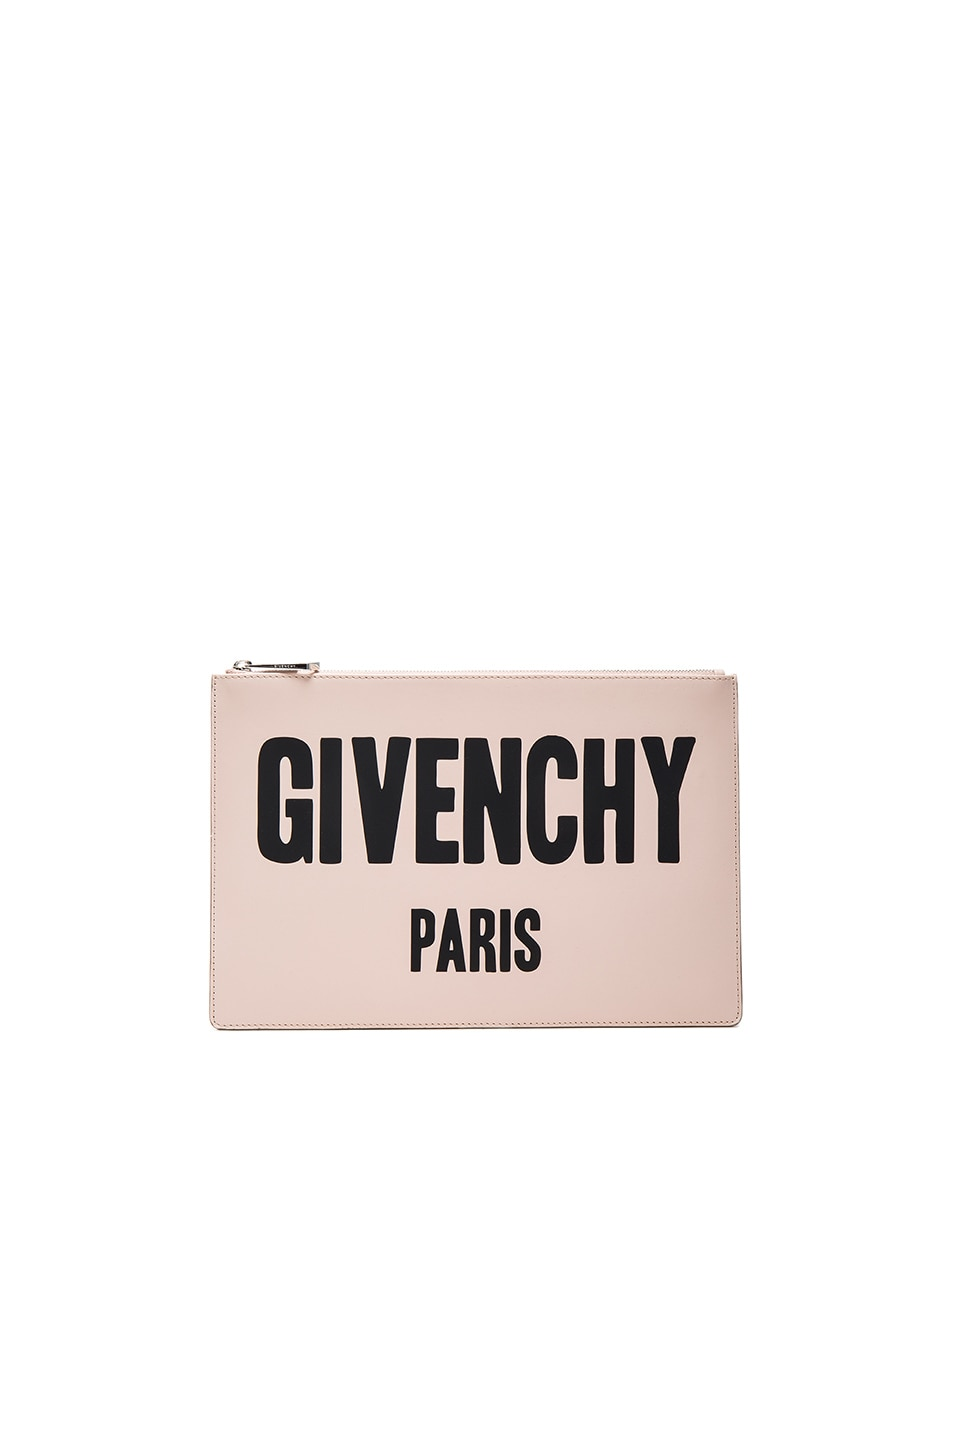 Image 1 of Givenchy Paris Printed Medium Pouch in Nude Pink